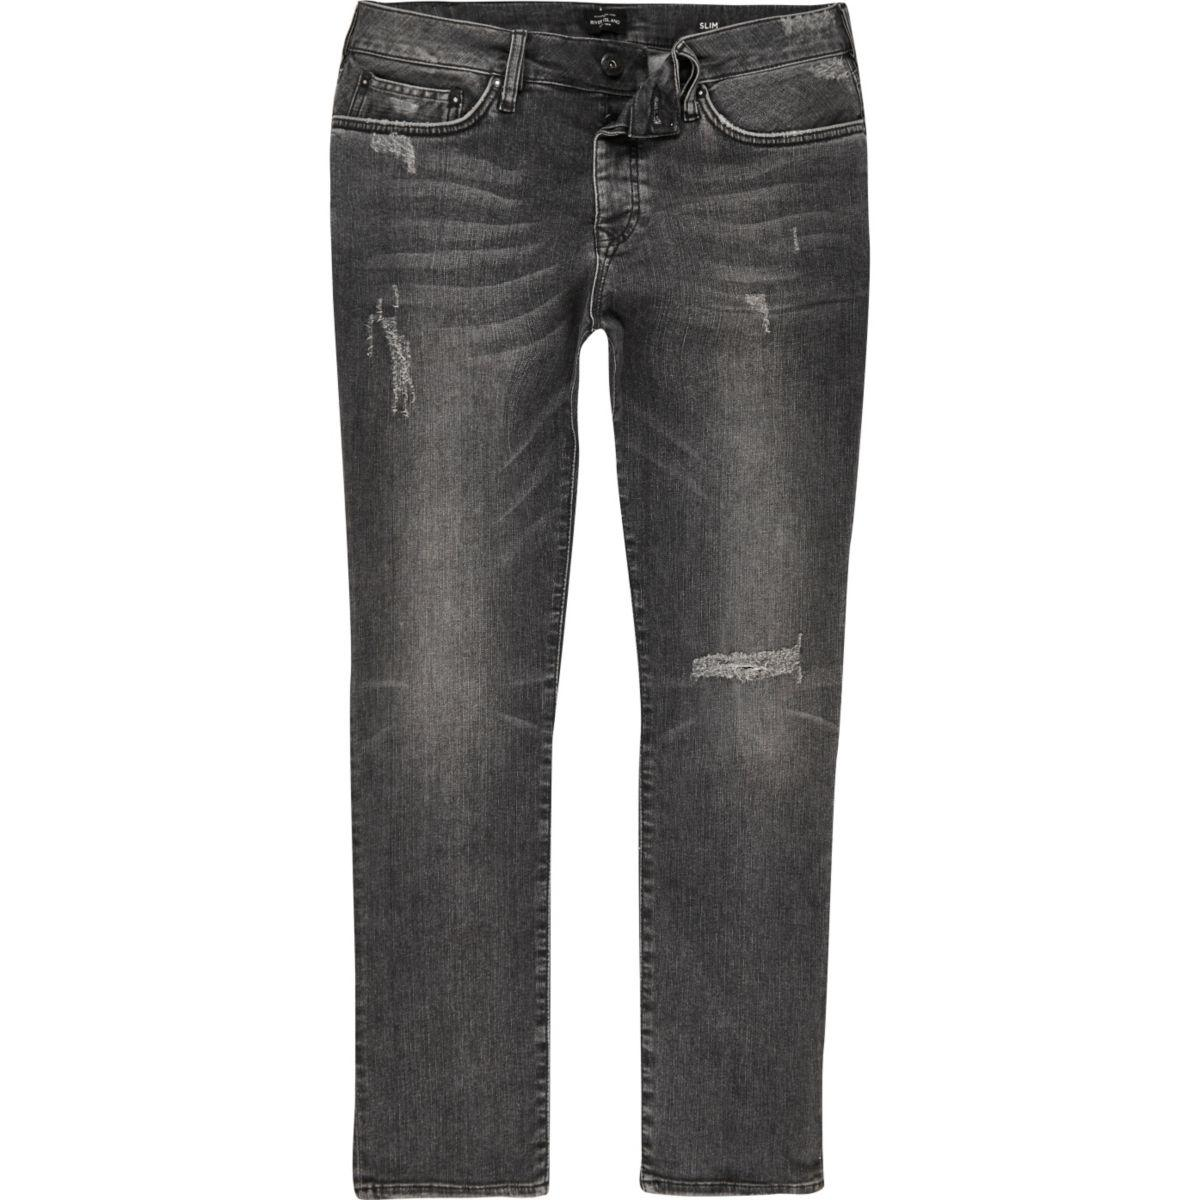 Dylan Jeans River Island